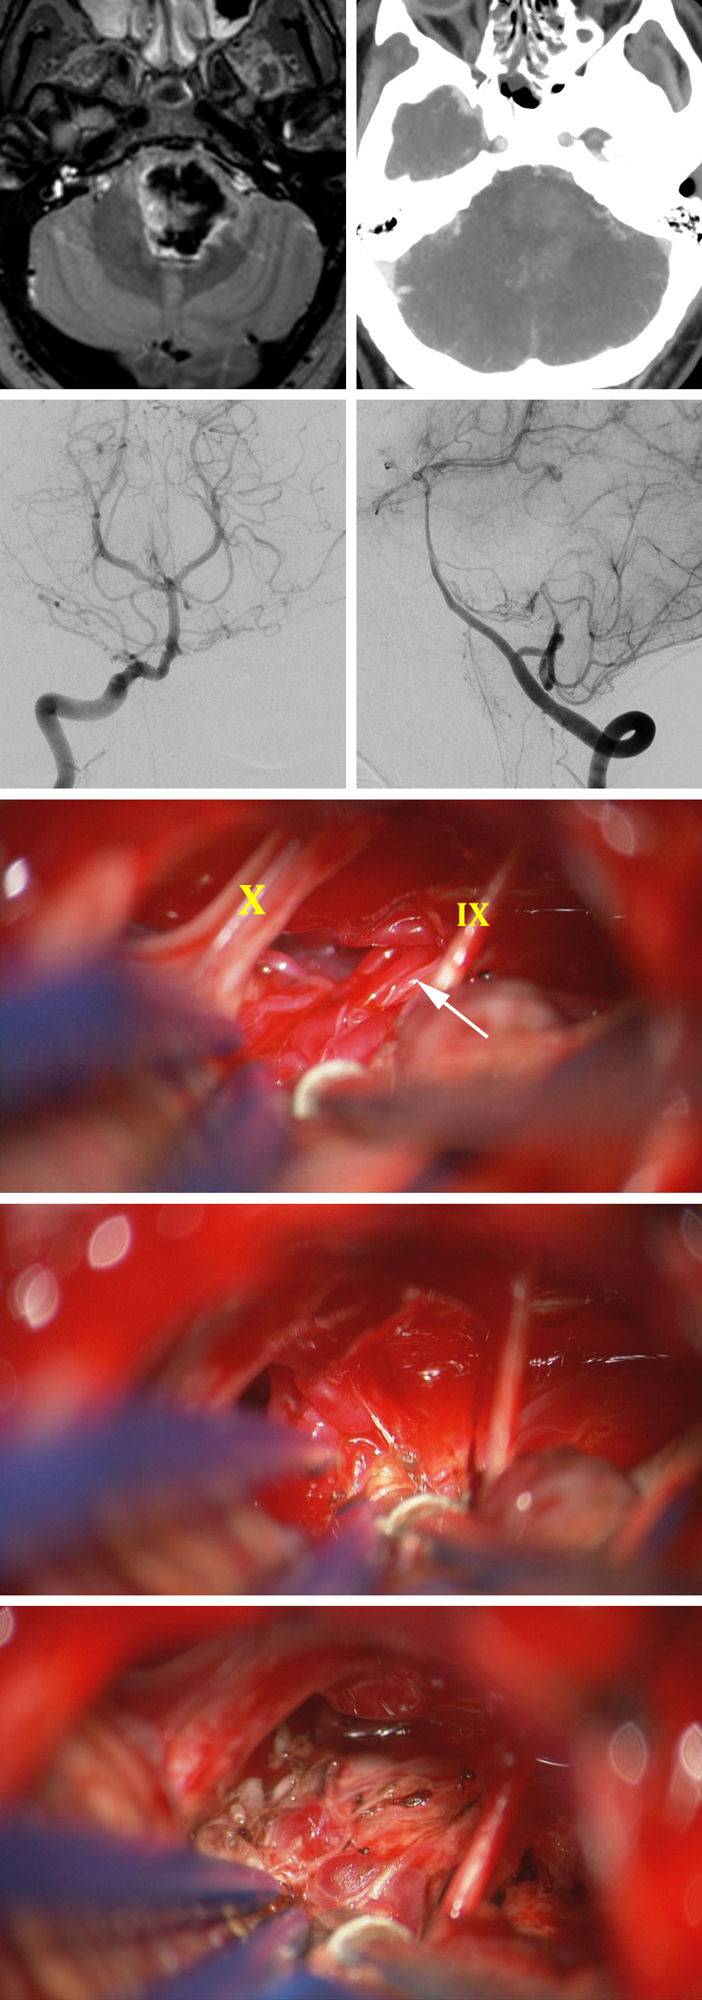 Figure 15: This unfortunate 31 year-old male presented with sudden hemiplegia and was found to suffer from a large pontine hematoma; CT angiogram was relatively unremarkable (top row). AP and lateral vertebral angiograms demonstrated a small pontomedullary AVM fed partly by the branches from the proximal basilar artery and AICA (second row). The AVM was exposed via a left-sided retrosigmoid craniotomy (third row). The nidus was disconnected via the  in situ  occlusion technique (fourth row). The remaining dark draining vein on the surface of the brainstem was also coagulated at the end of the operation (last row).